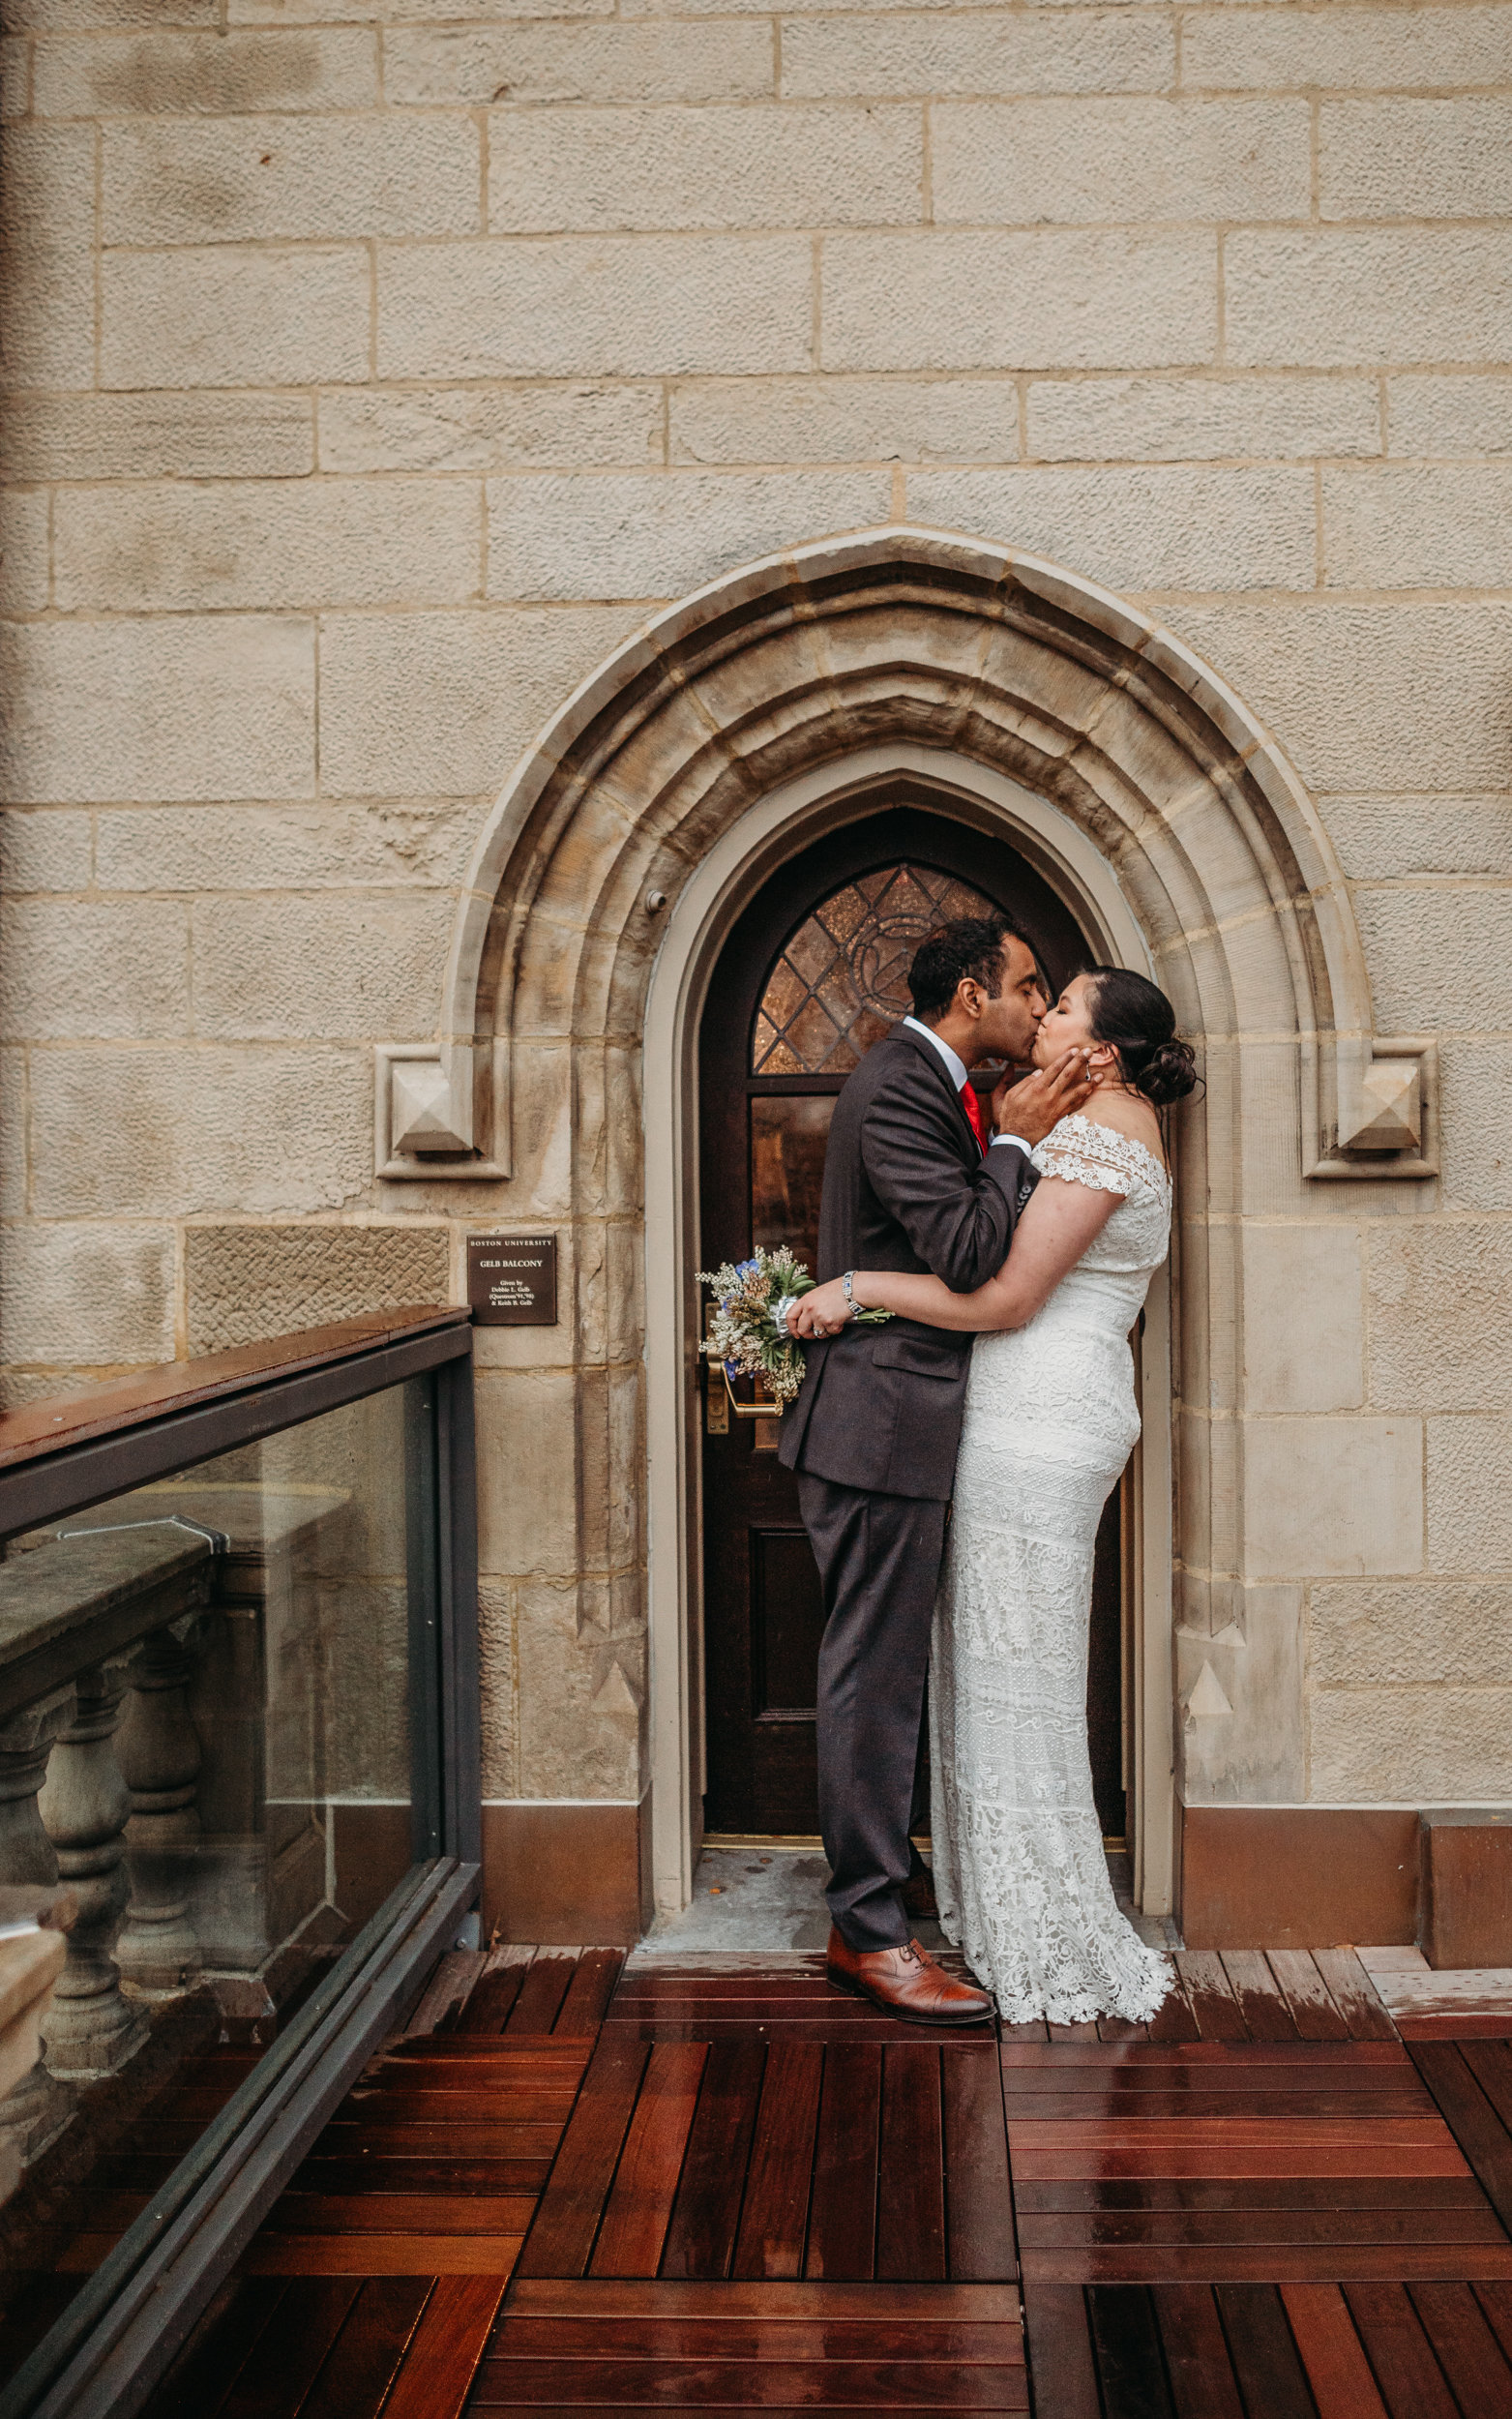 bride and groom kiss in doorway of old stone building in boston ma